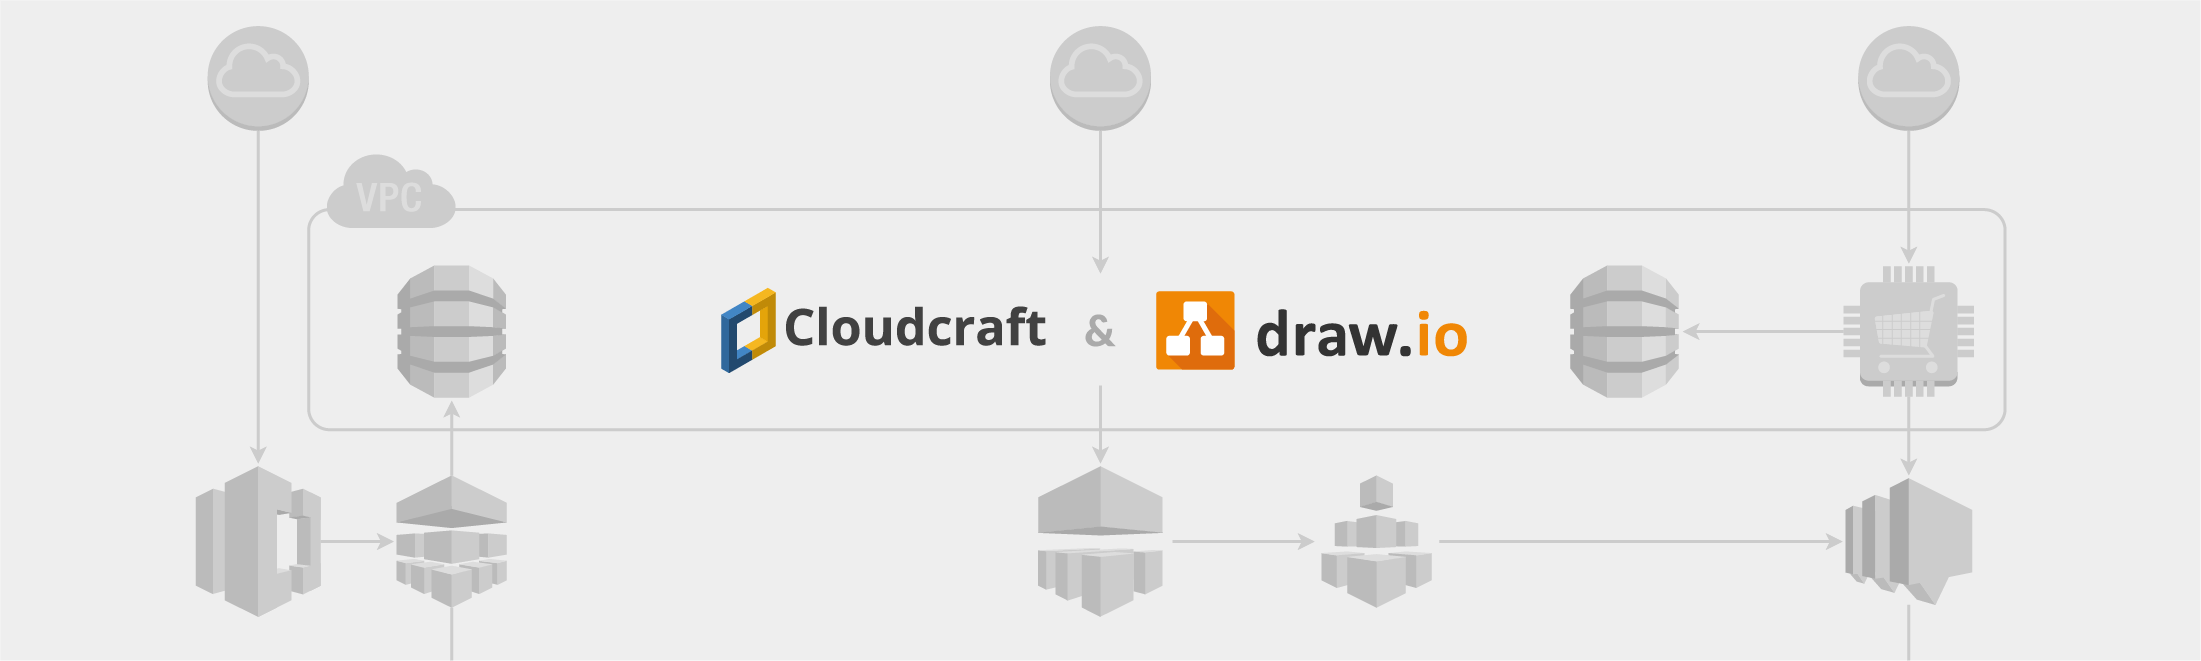 how to draw architecture diagram jaguar xjs wiring diagrams io document your aws with cloudcraft and